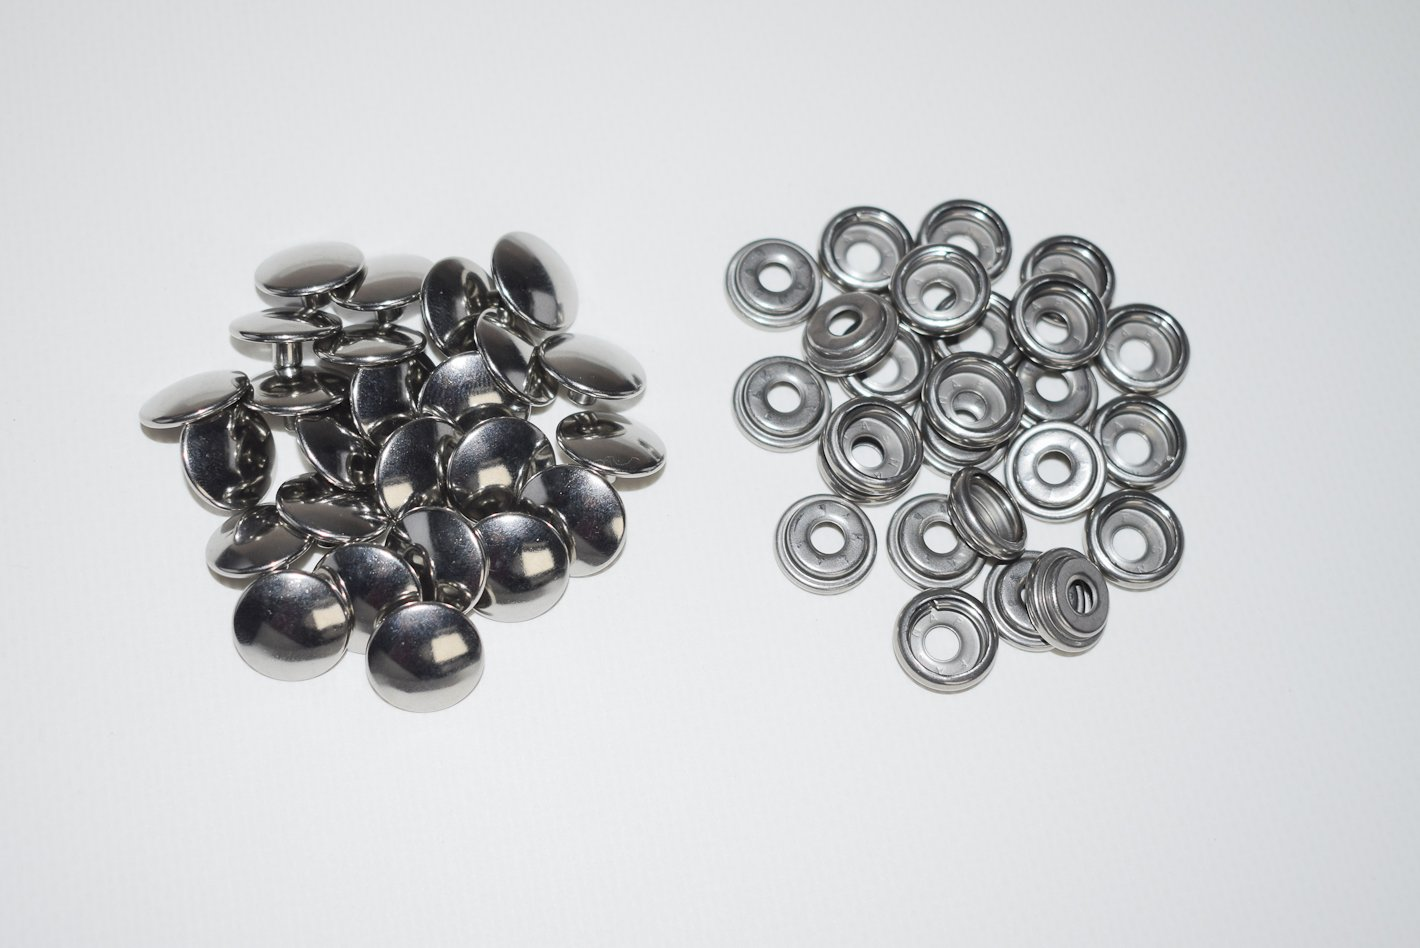 Stainless Steel Snap Fastener's, 25 Piece, Cap & Socket Only, Marine Grade, By Vaughan Bros